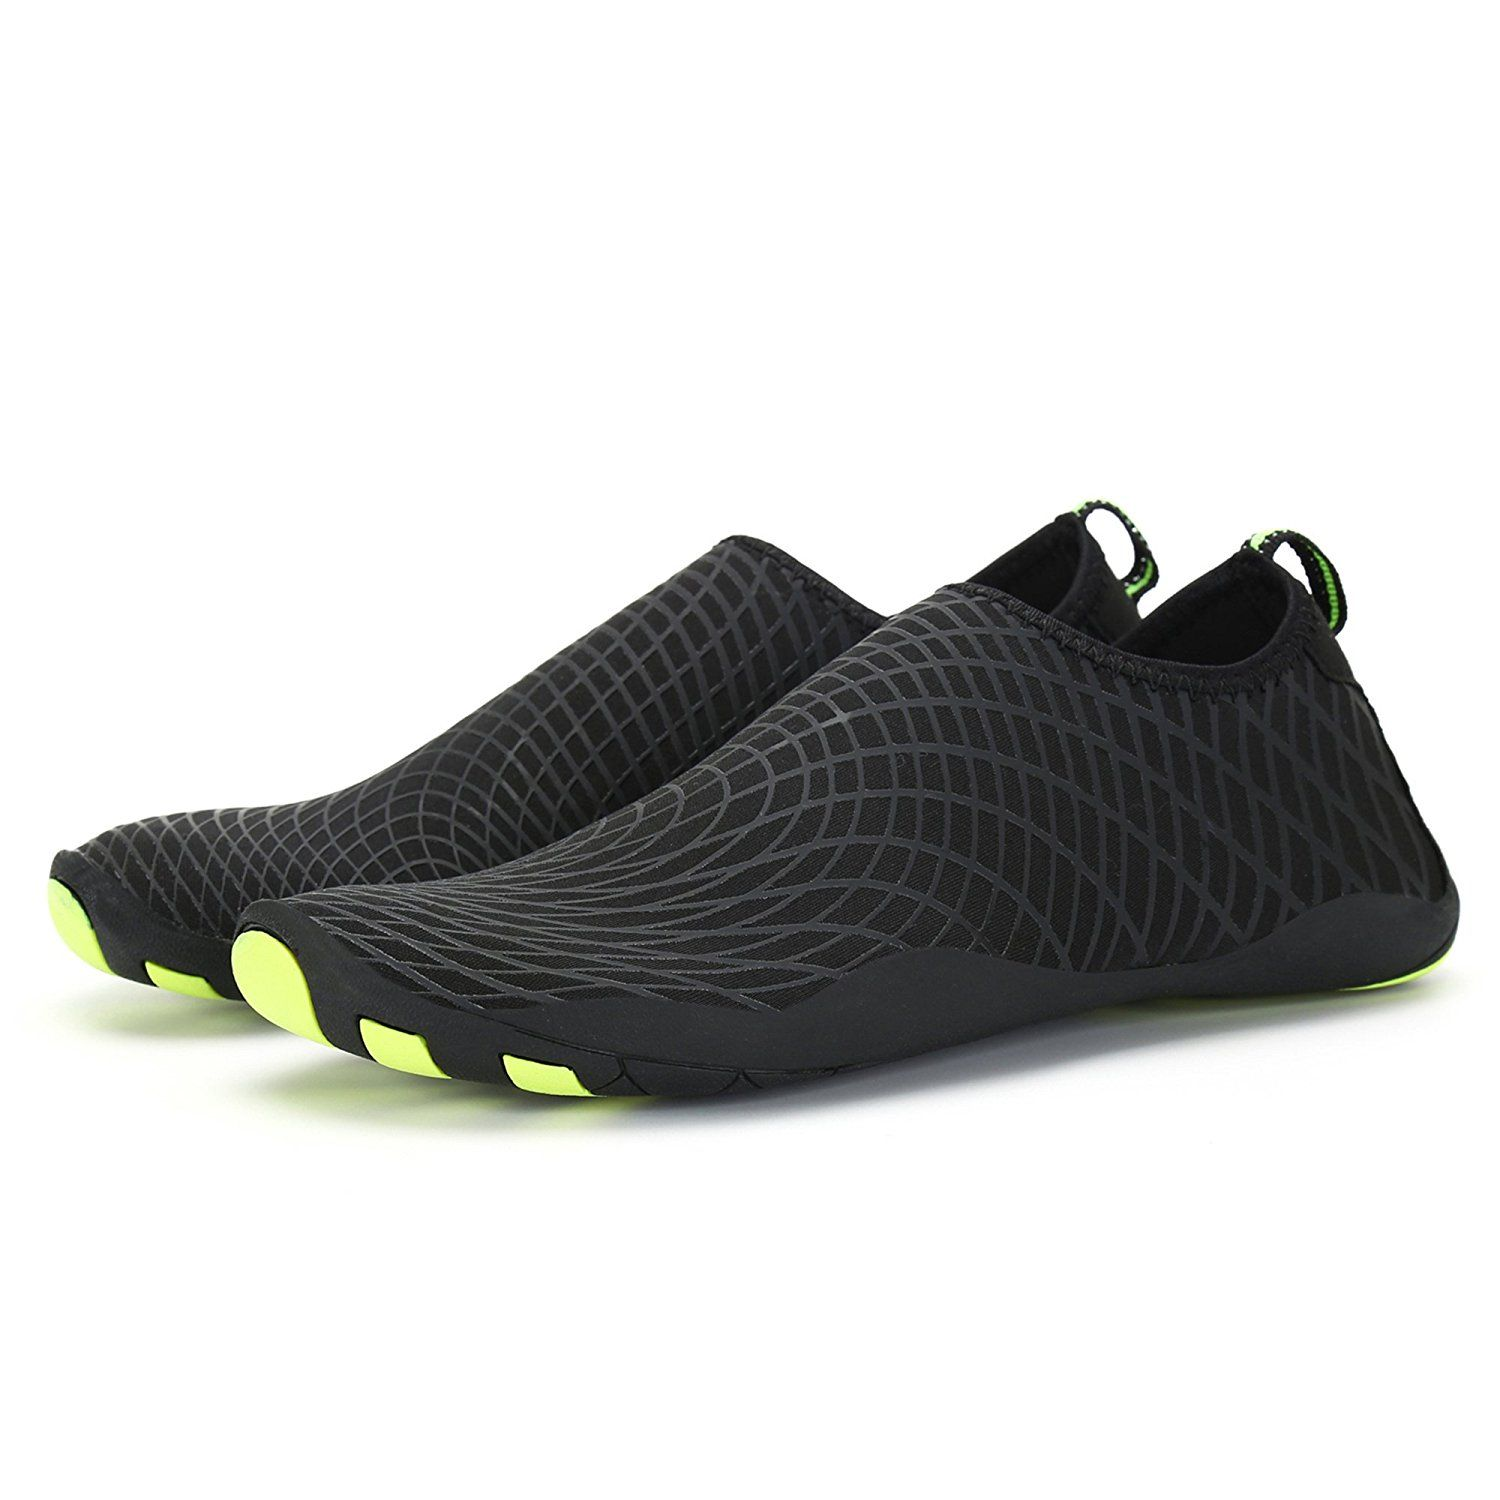 Men Women Quick Drying Aqua Water Shoes Athletic Sport Lightweight Slip On Walking Shoes Beach